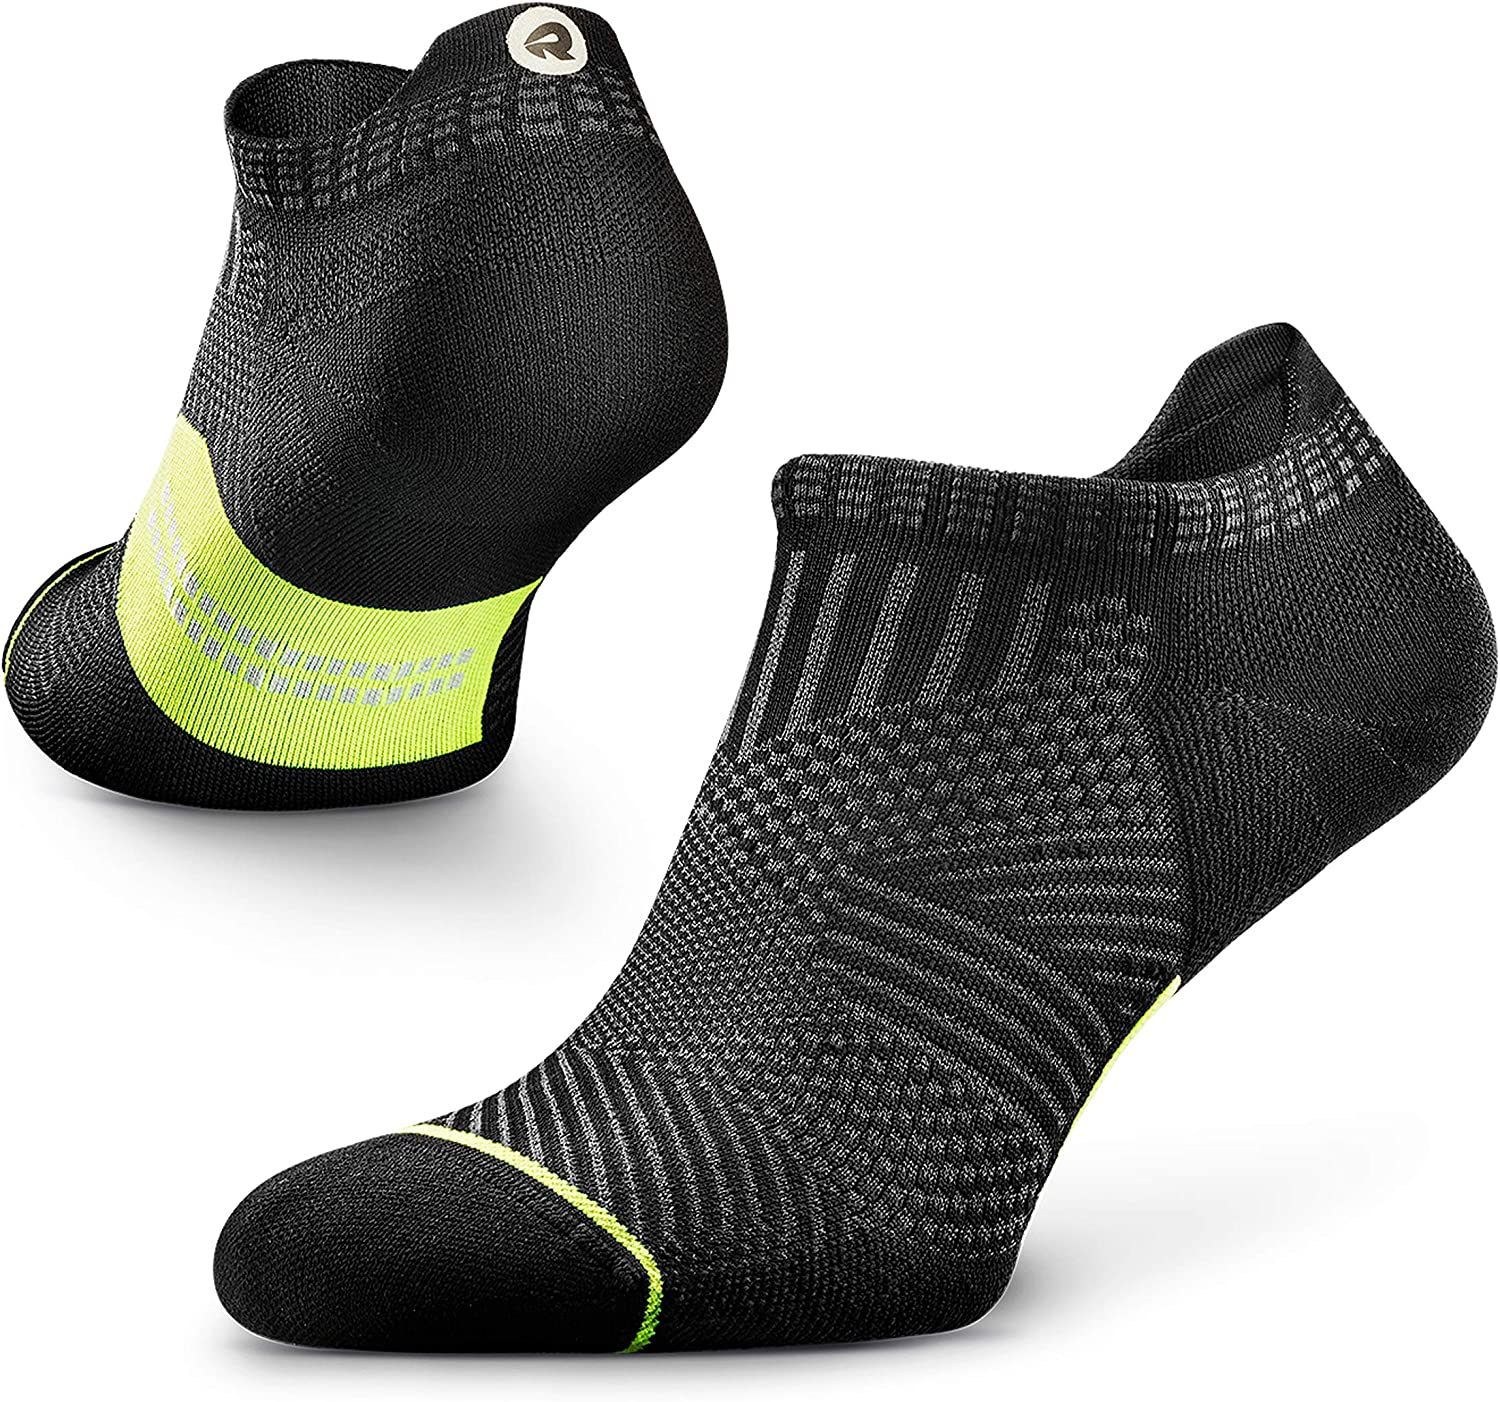 Rockay Accelerate Anti-Blister Max Cushion Men for Max 51% OFF Running Be super welcome Socks